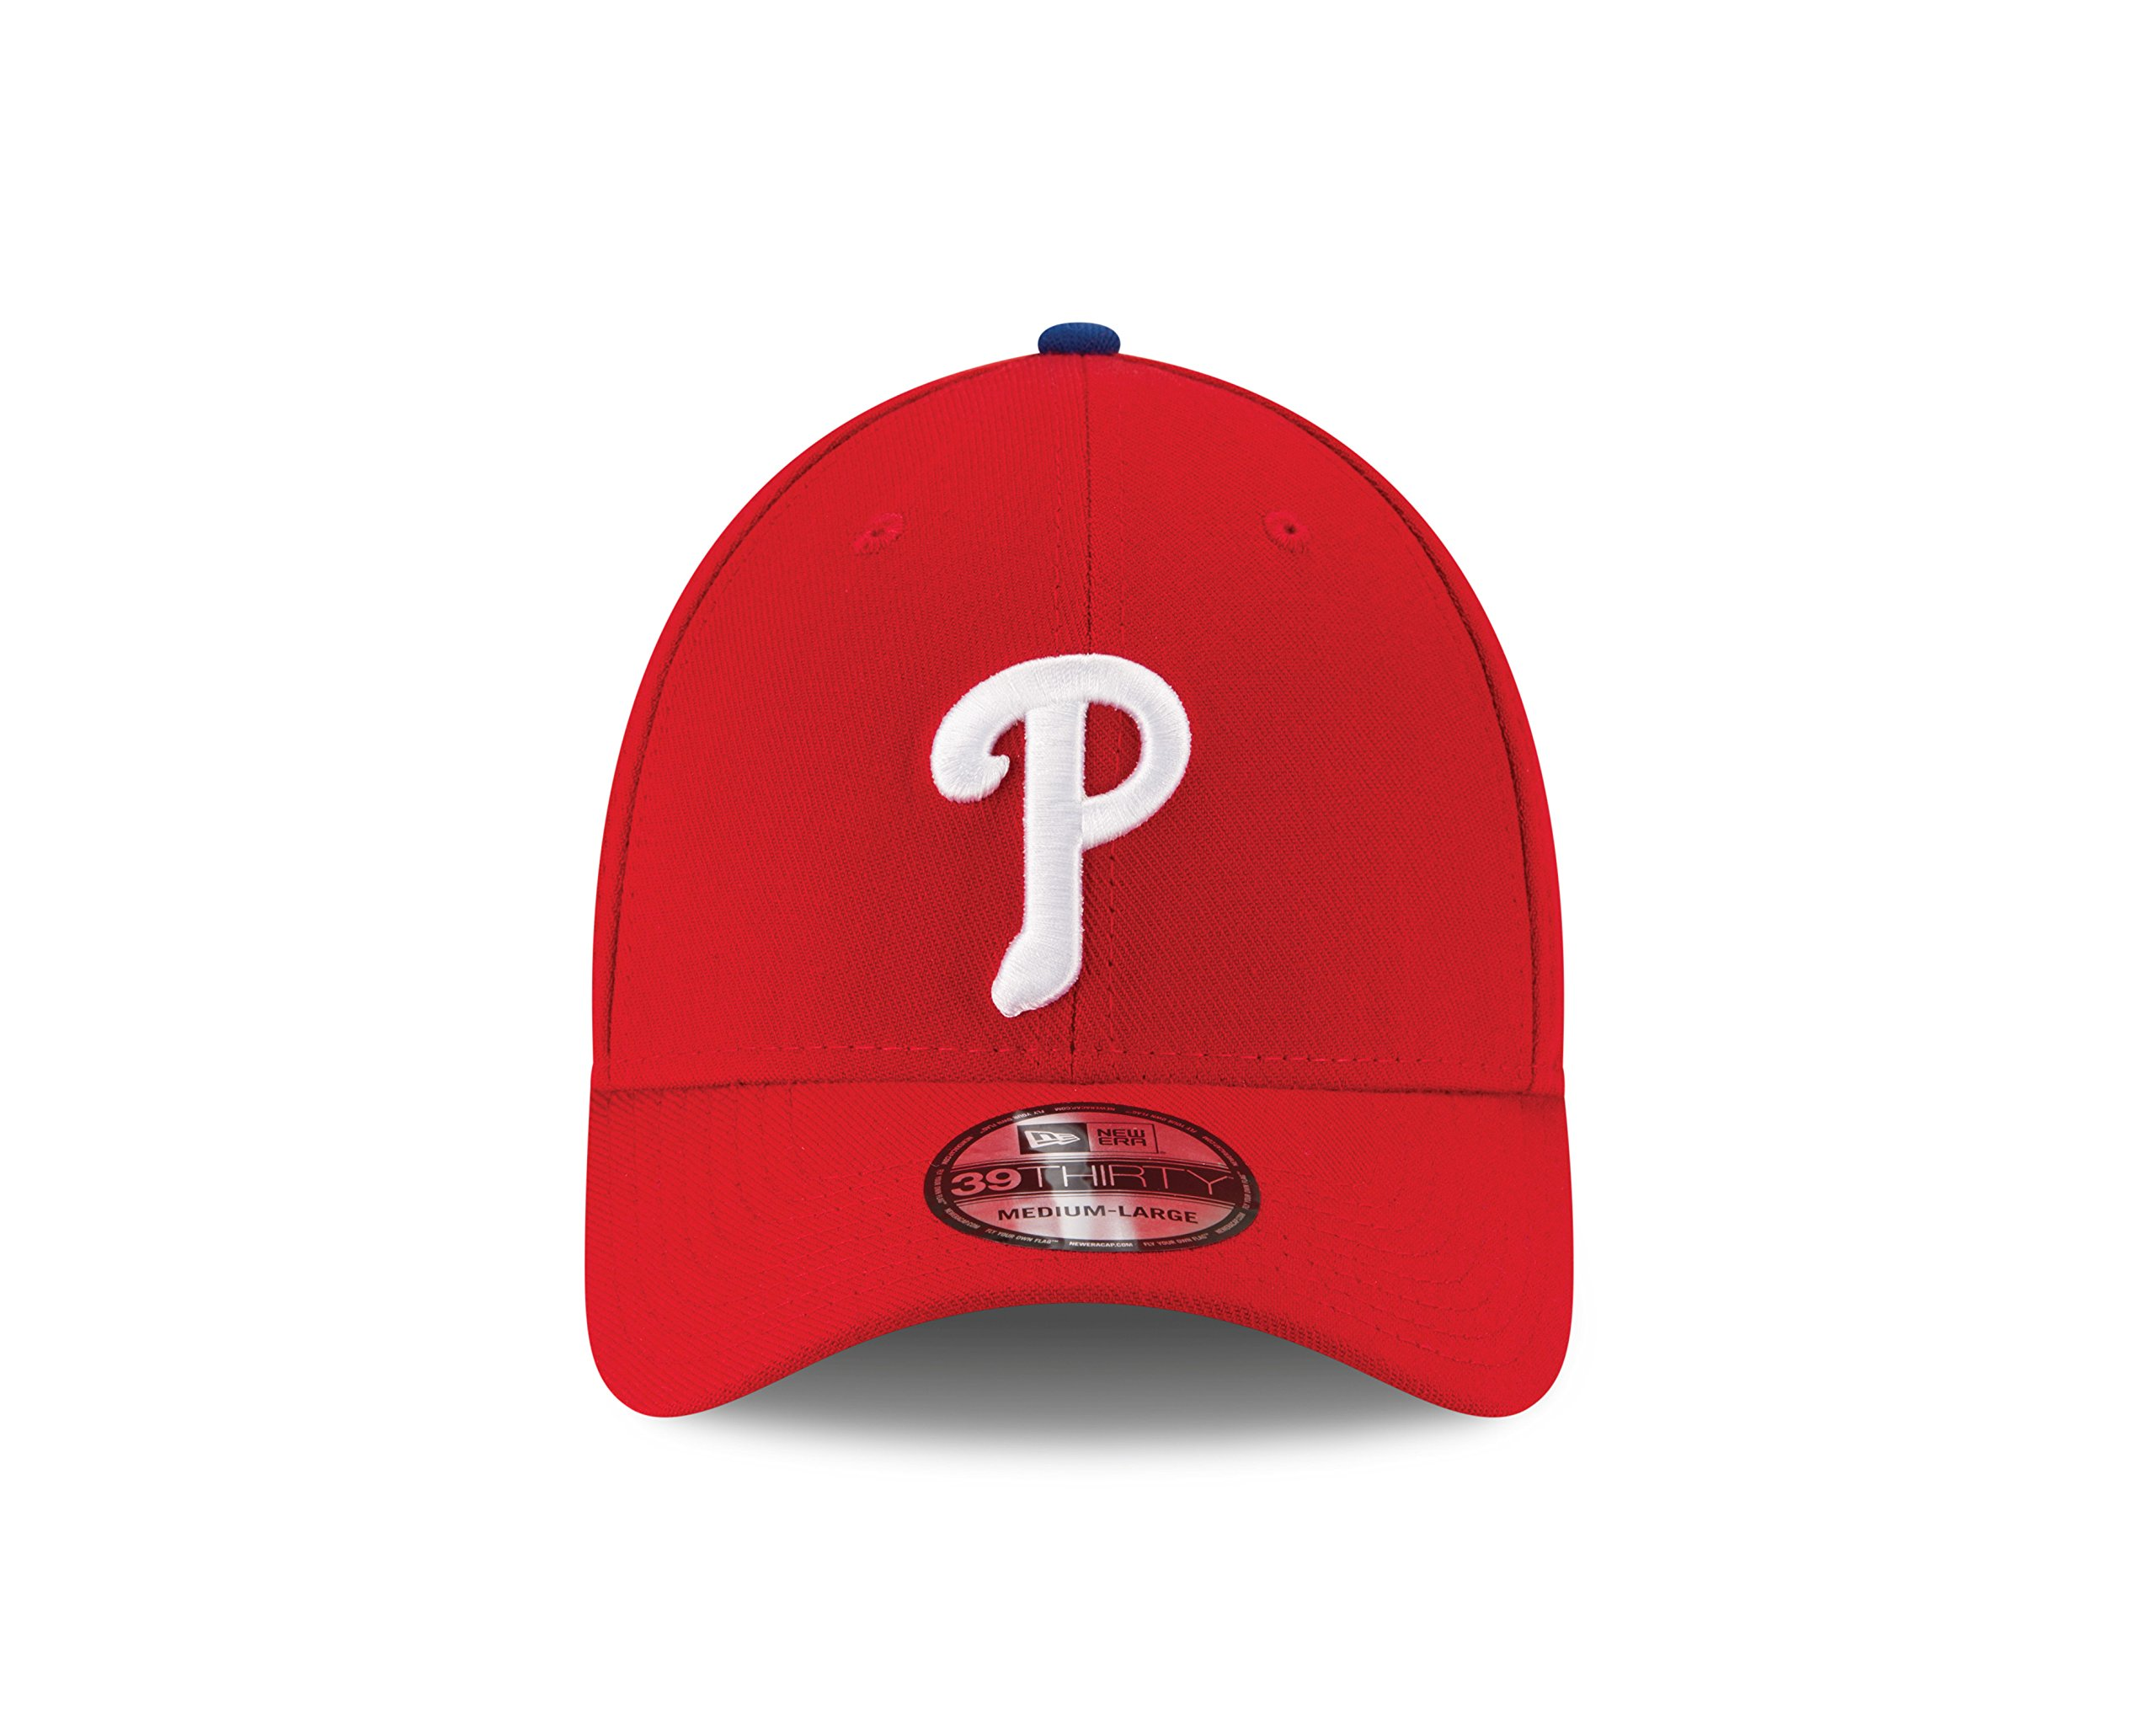 new styles ed7cb c430d MLB Philadelphia Phillies Team Classic Game 39Thirty Stretch Fit Cap, Red,  Medium Large - 10975800   Caps   Hats   Sports   Outdoors - tibs